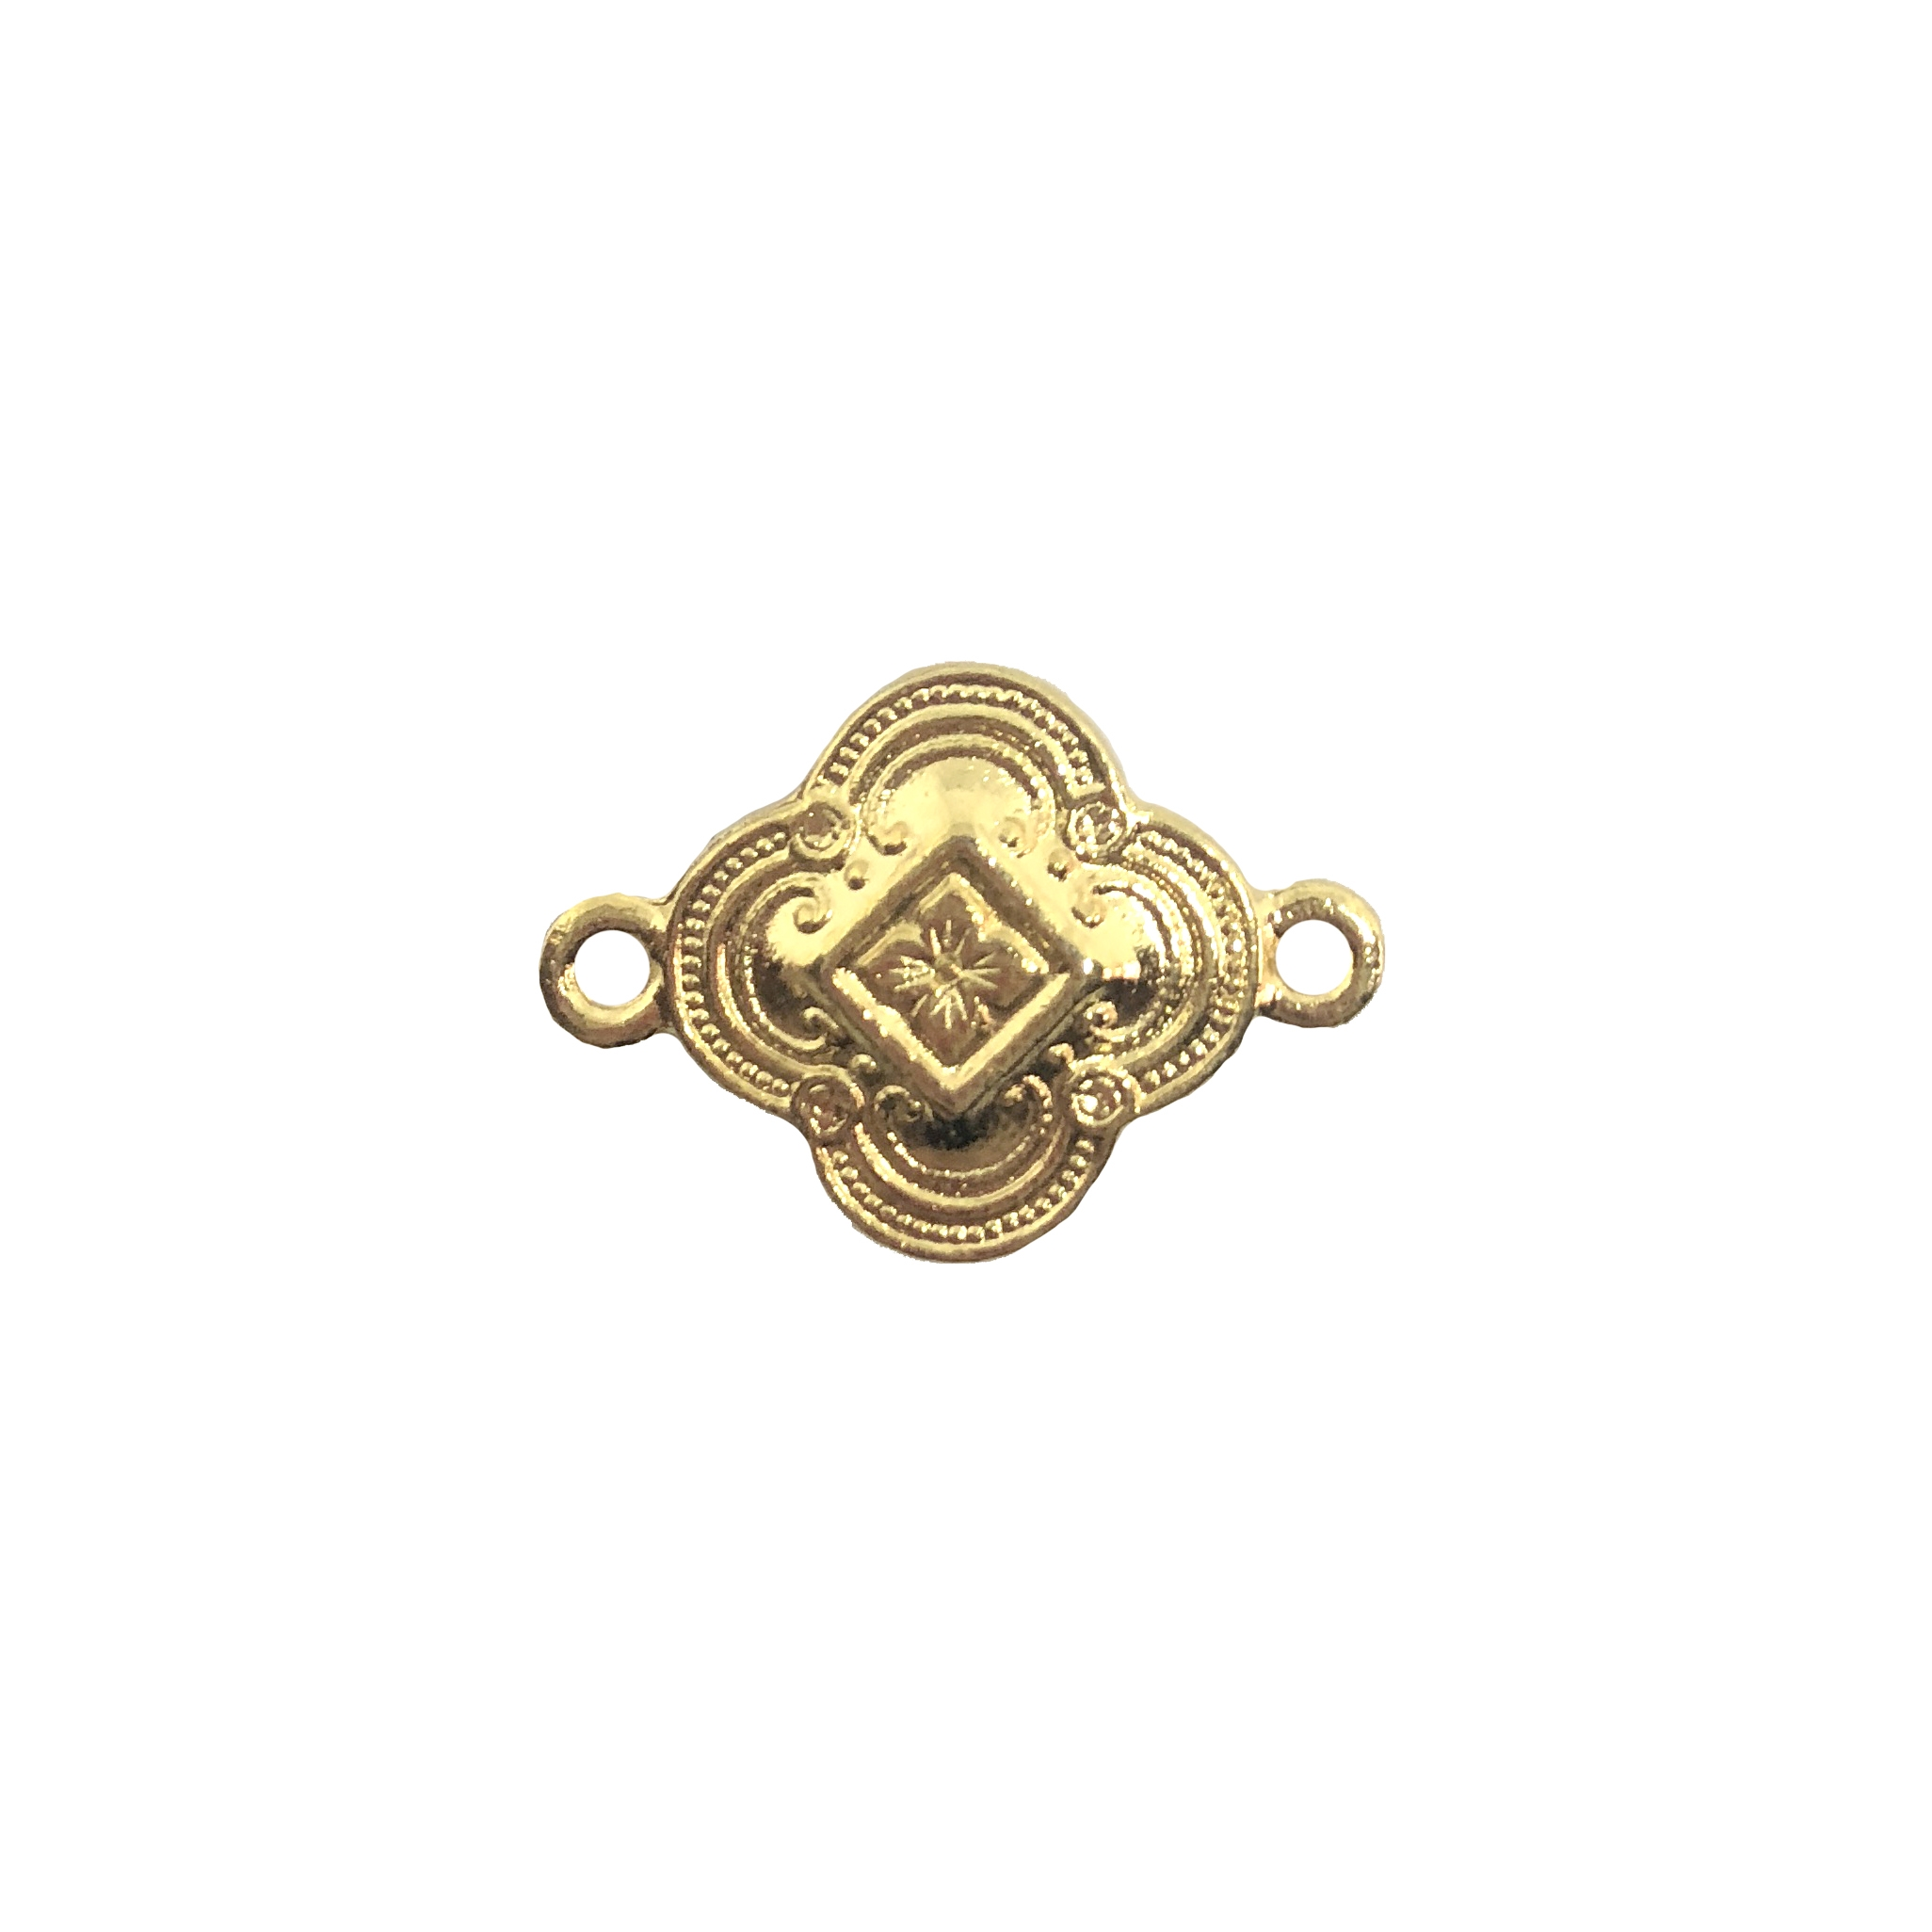 small Victorian connector, 22K gold finish pewter, connector, B'sue by 1928, 15mm, B'sue Boutiques, US made, jewelry connector, charm, pewter base, plated pewter, Victorian design, floral connector, lead free pewter, vintage supplies, gold, 08545